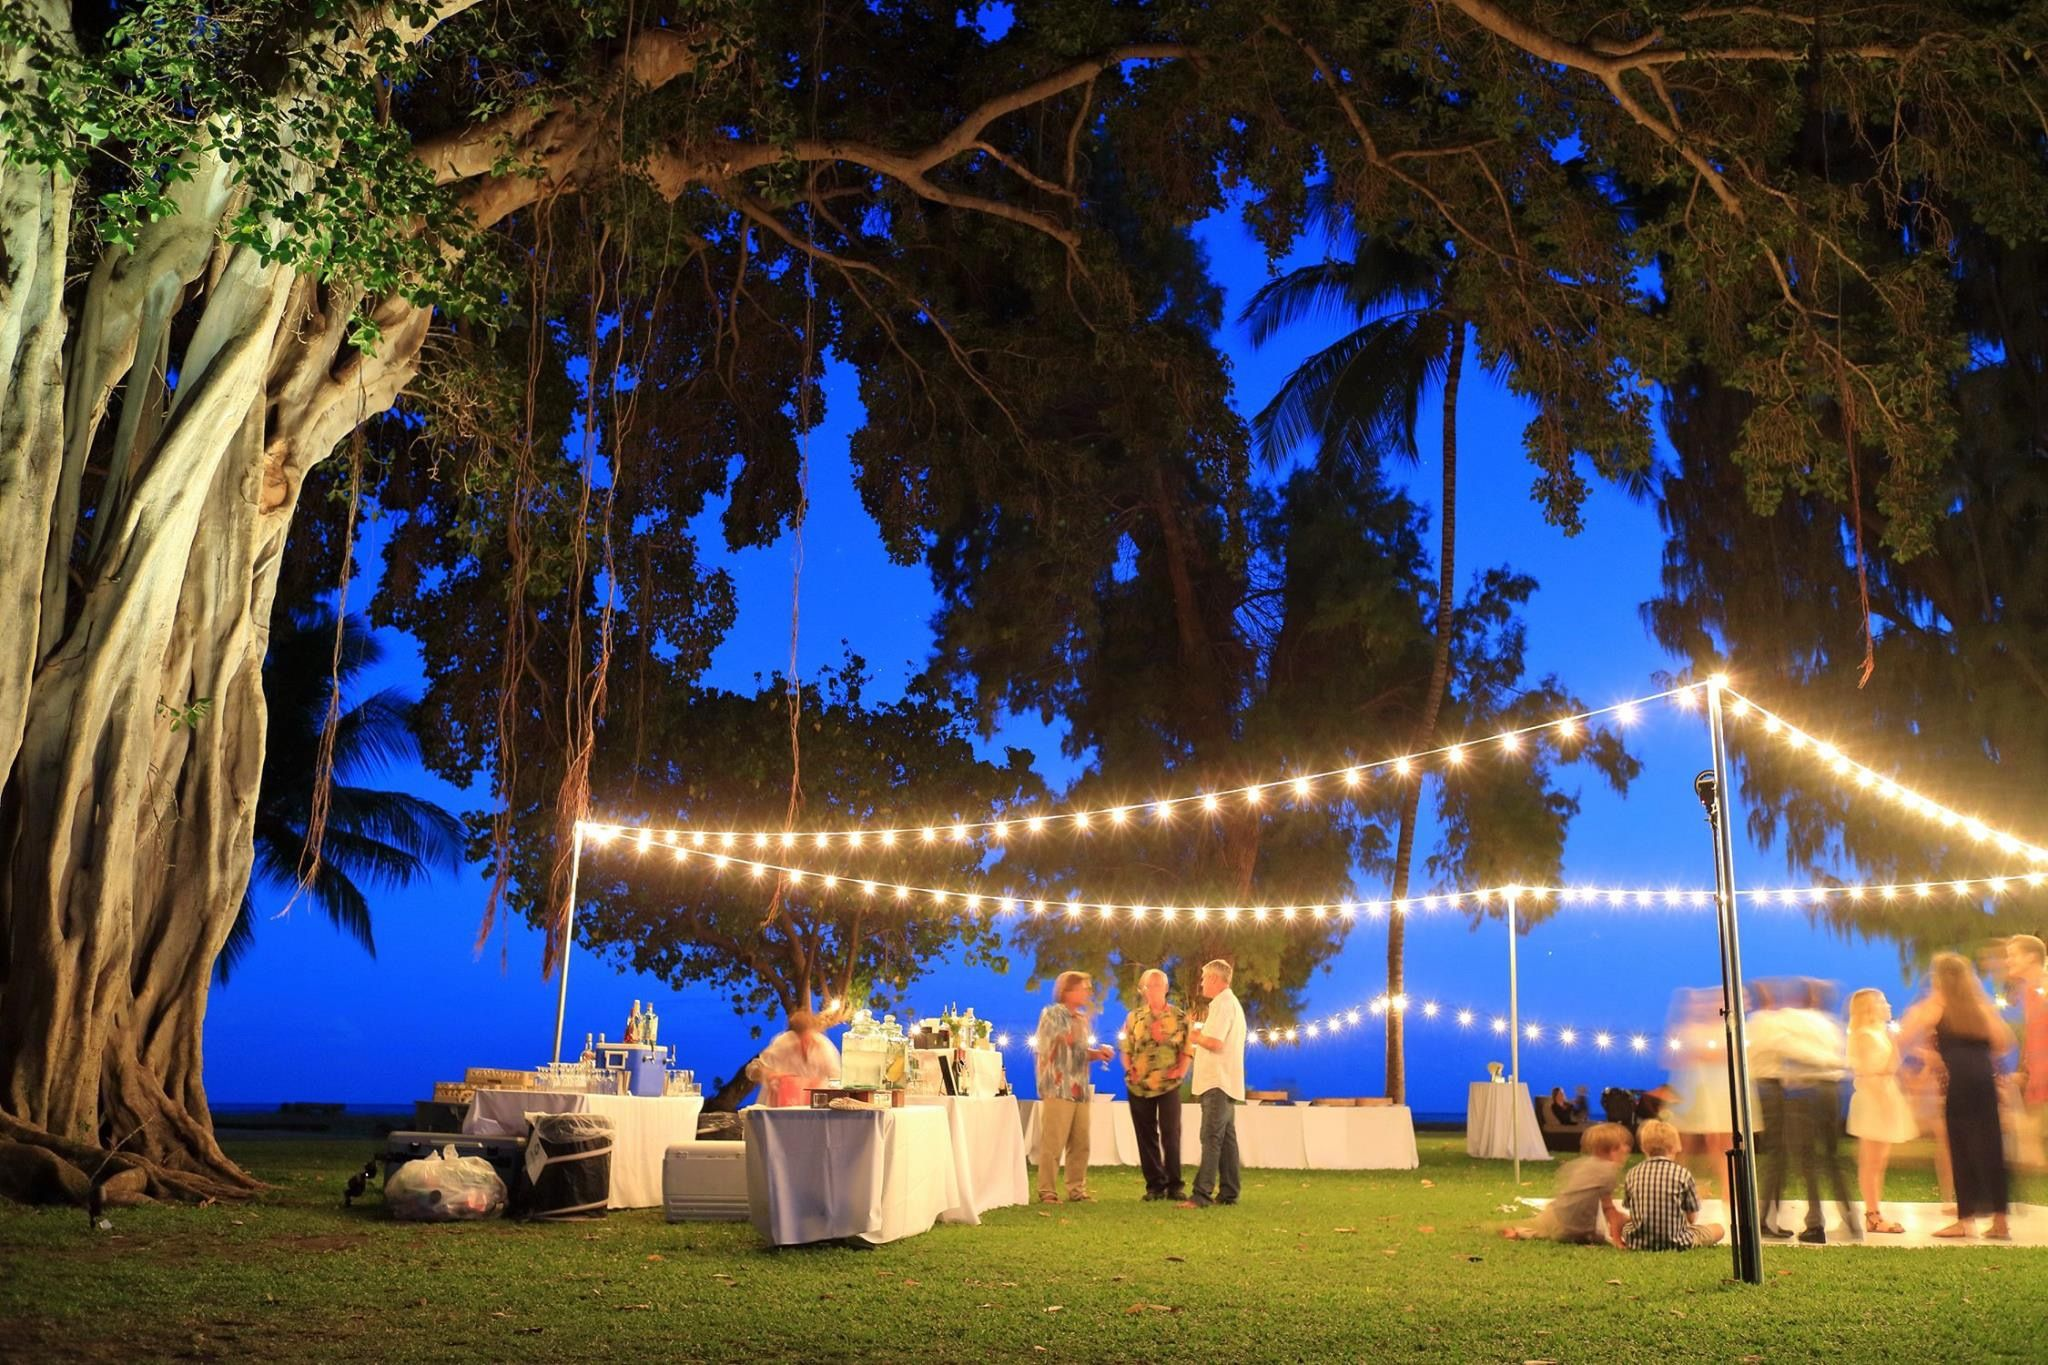 Exterior Café Lighting Post String Lights Light Bistro Landscape Up Banyan Tree Waimea Plantation Cottages